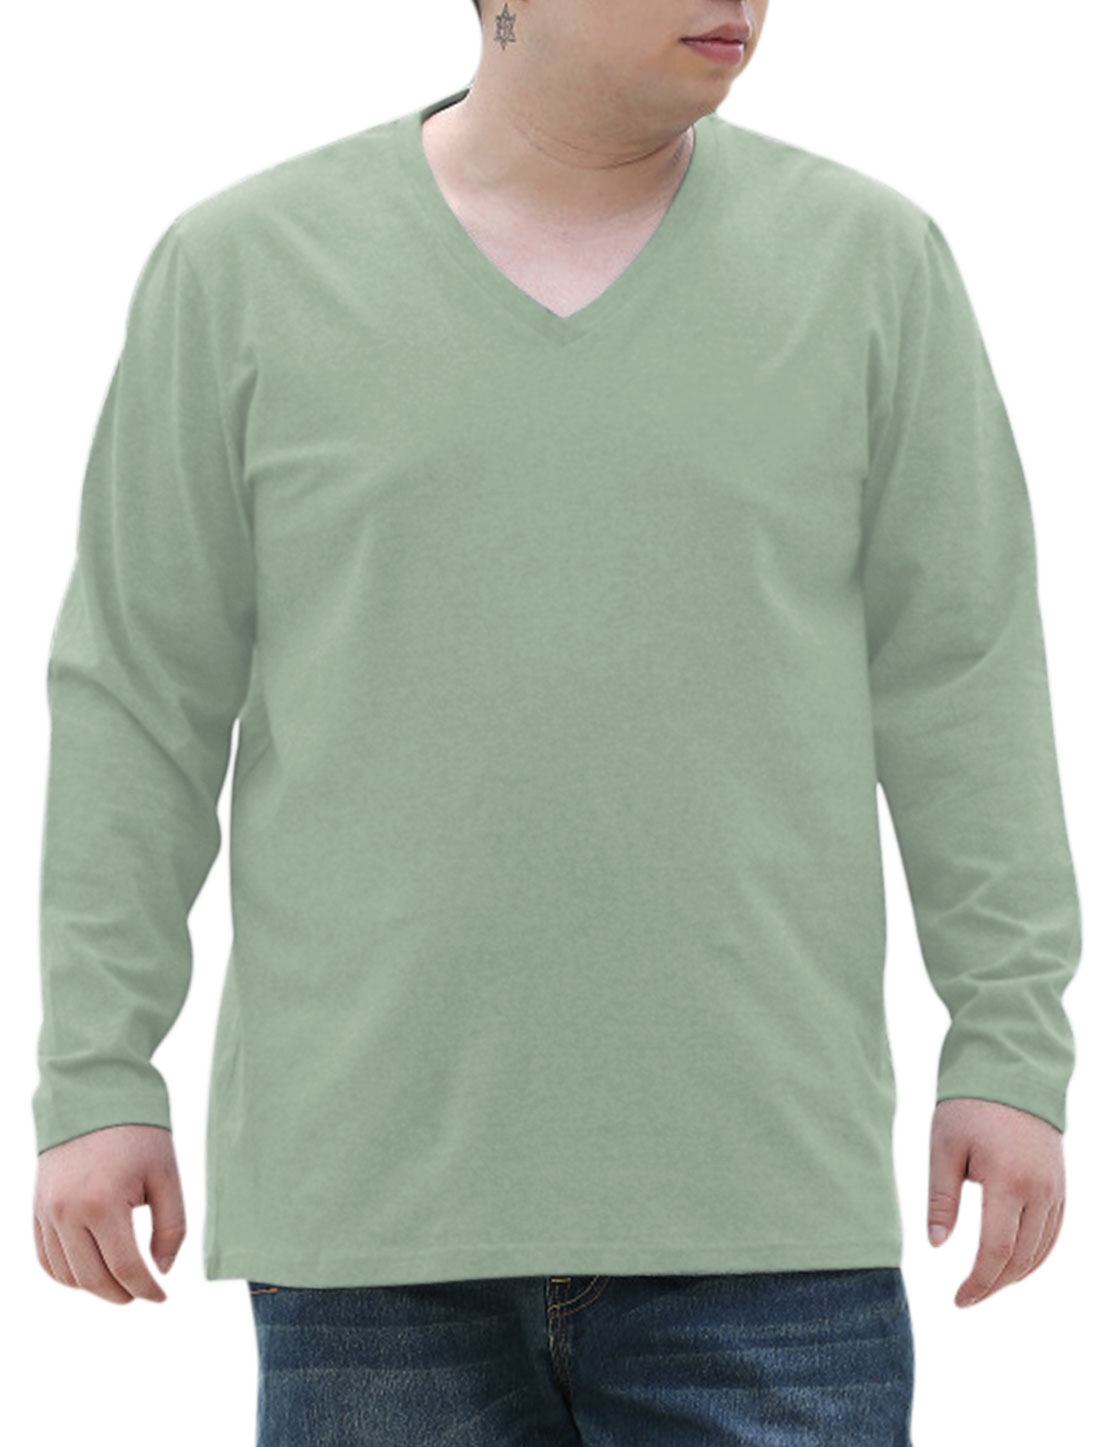 Men Soft Round Neck Pure Design Casual Big-Tall T-shirt Dusty Green 2X Big